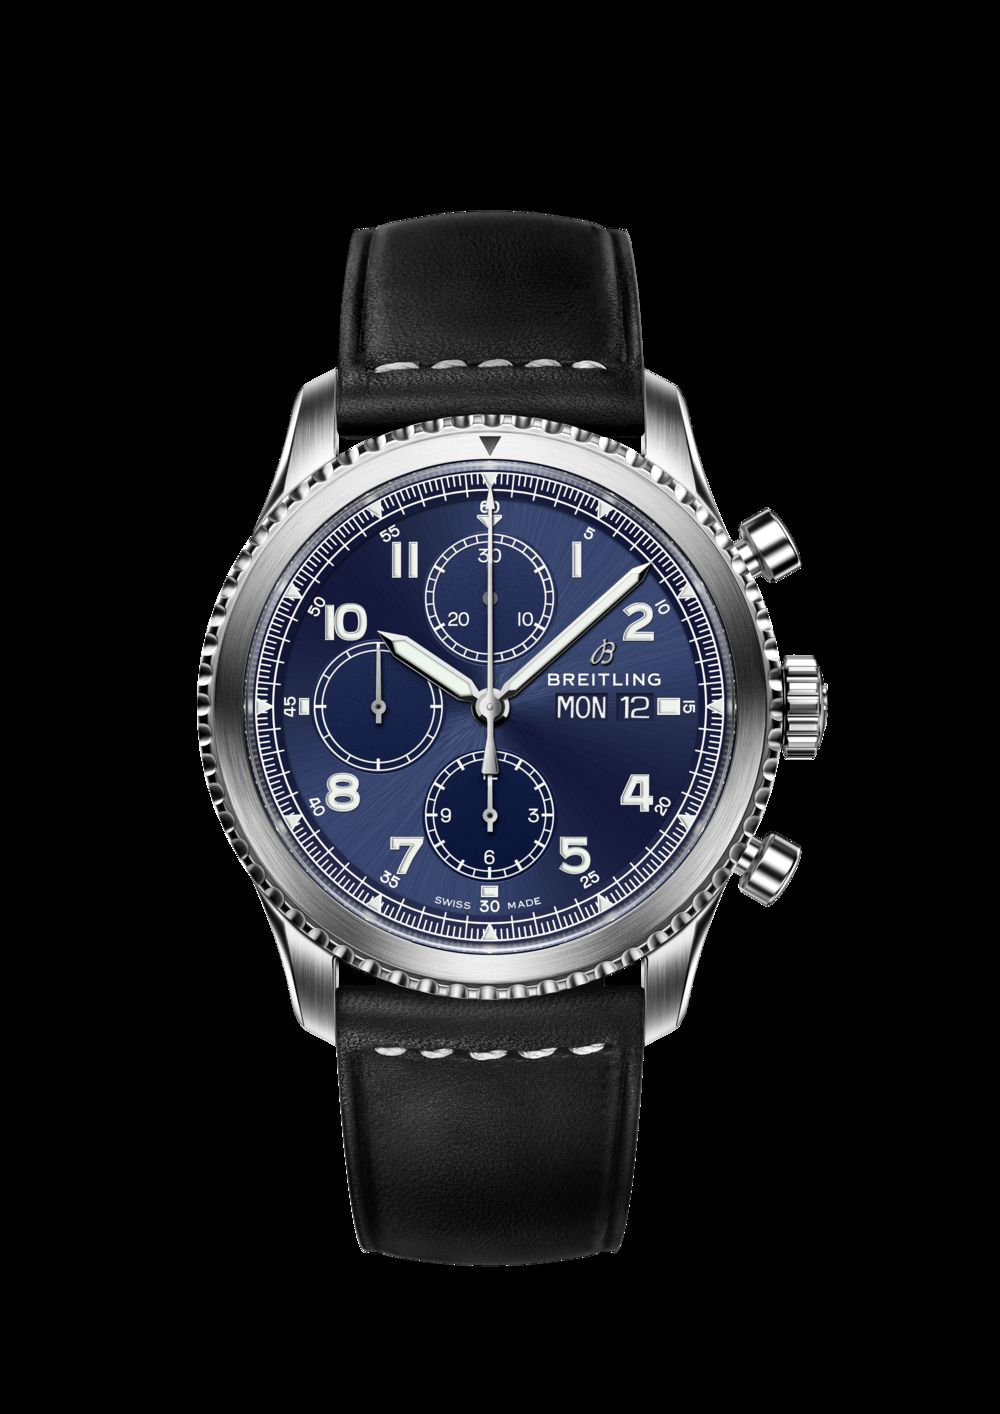 Breitling Navitimer 8 Chronograph With Blue Dial And Stainless Steel Bracelet